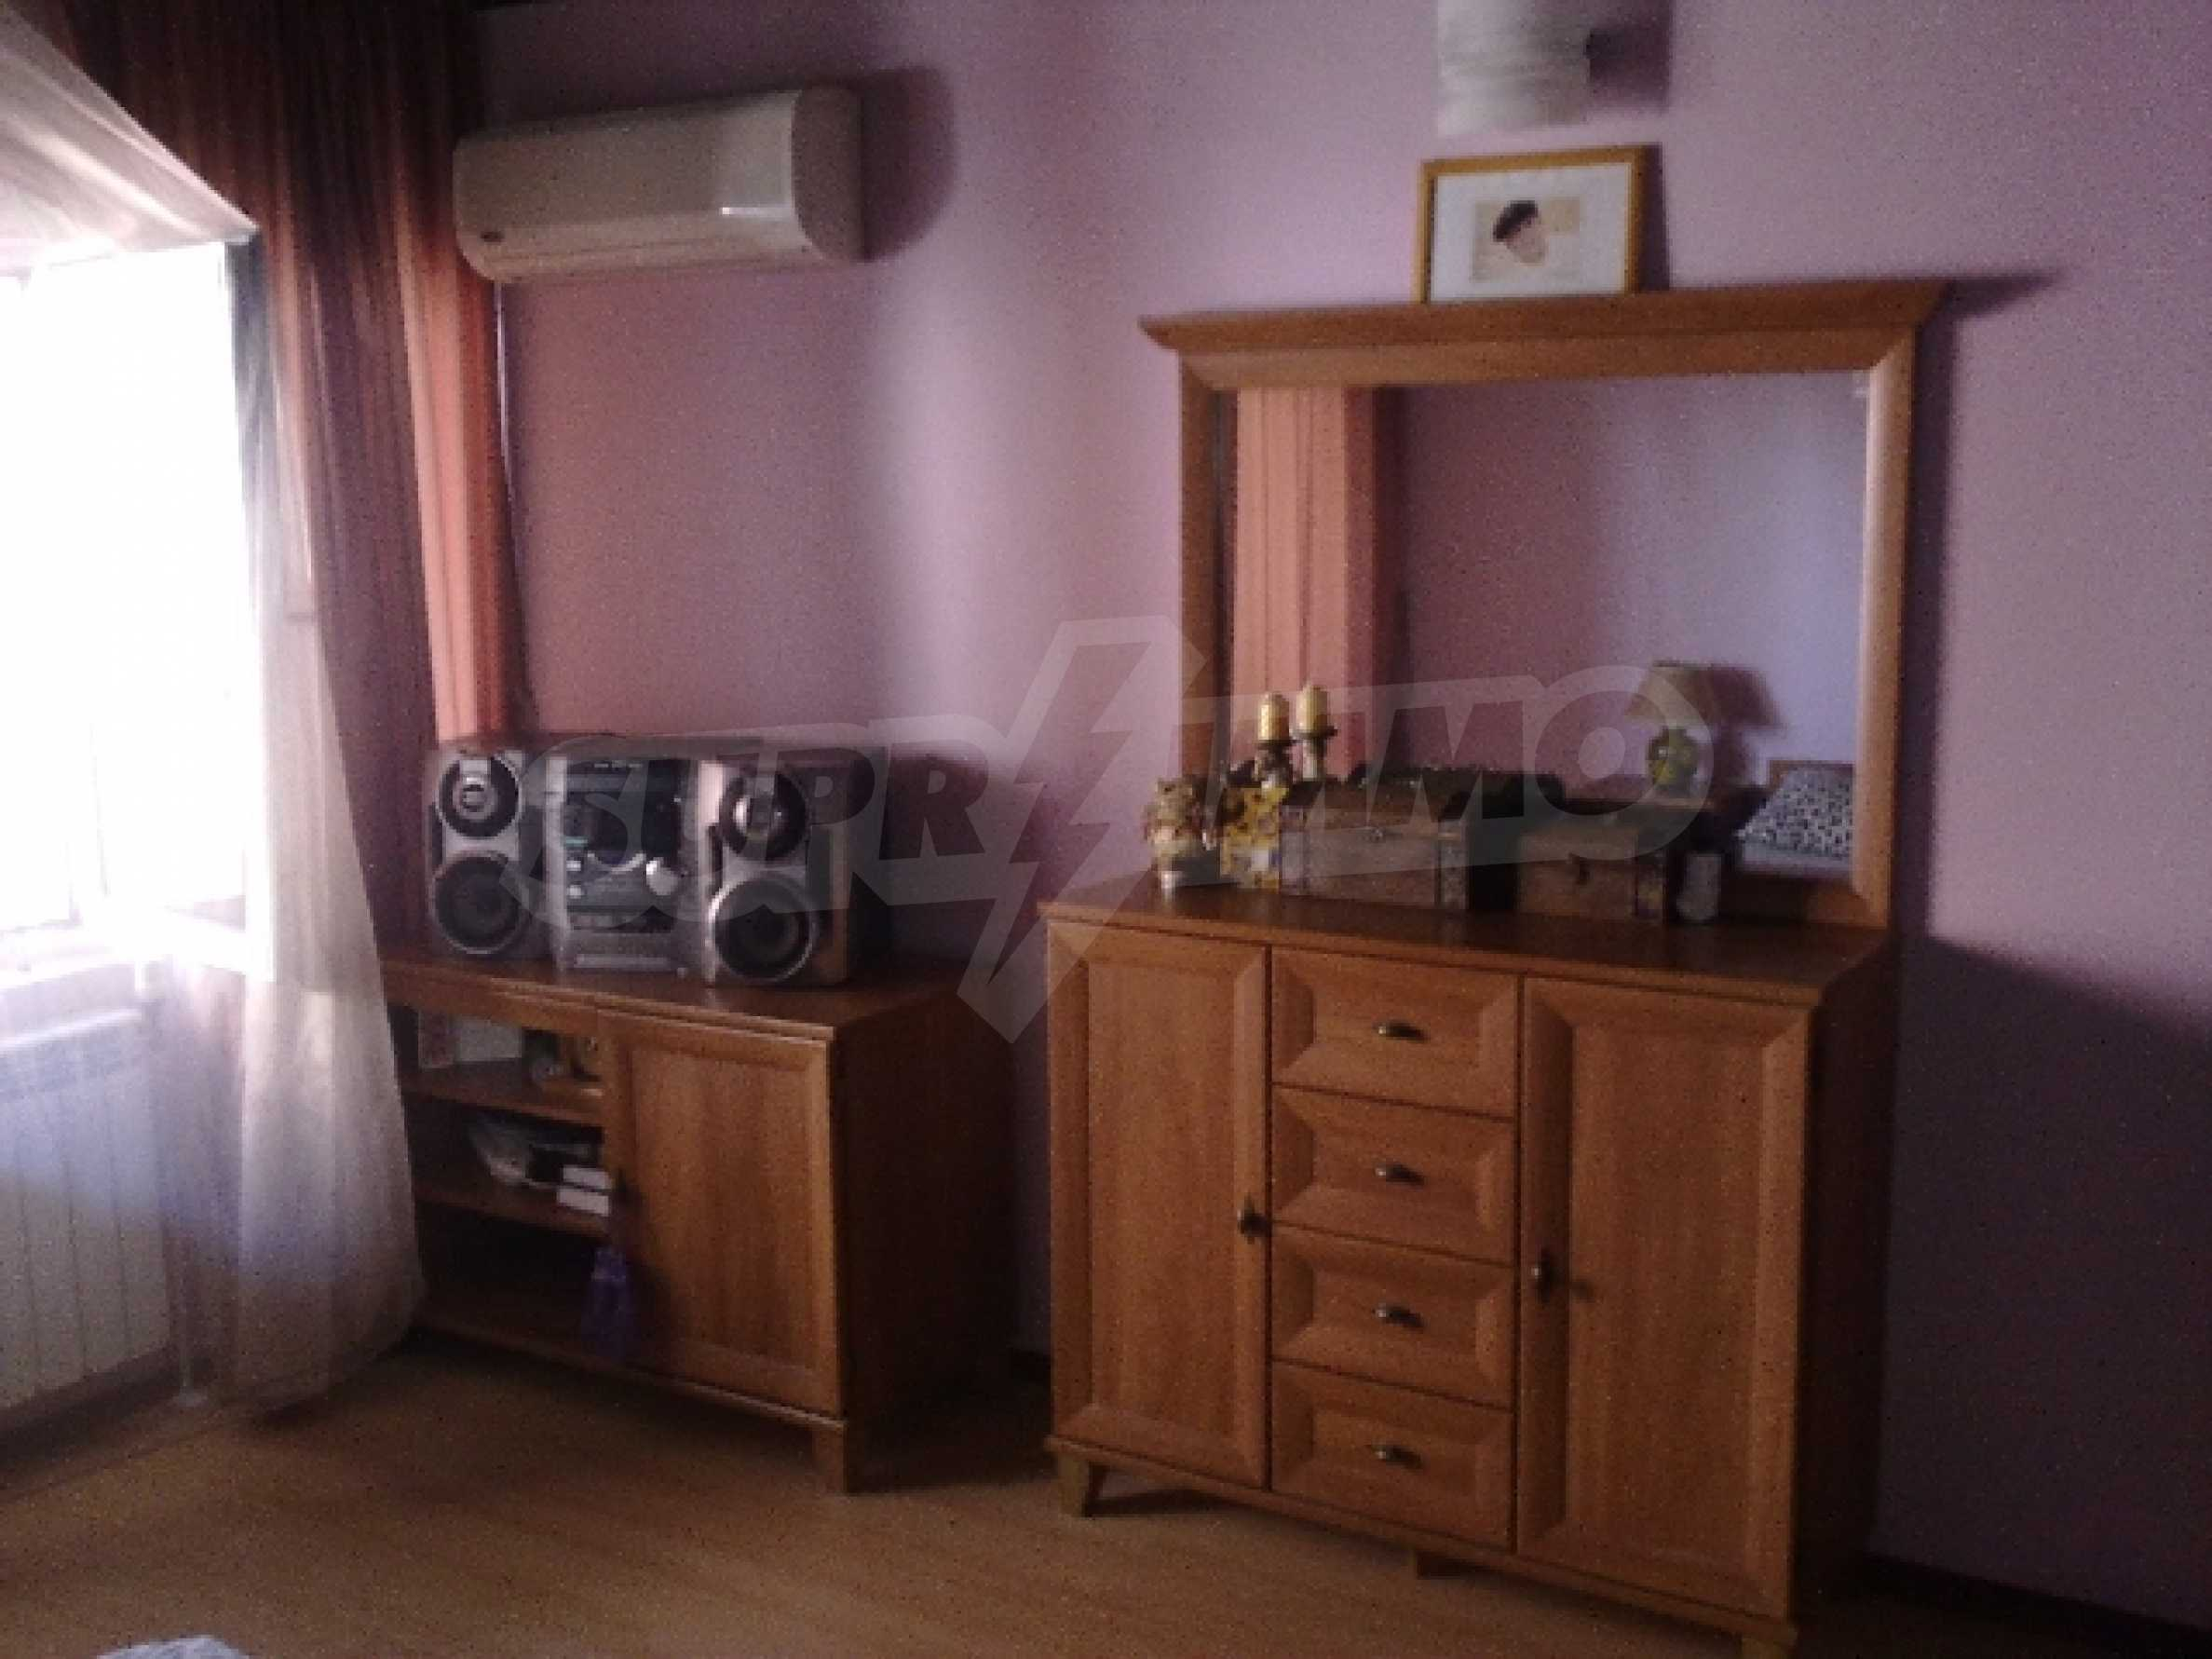 House for sale in Haskovo 9